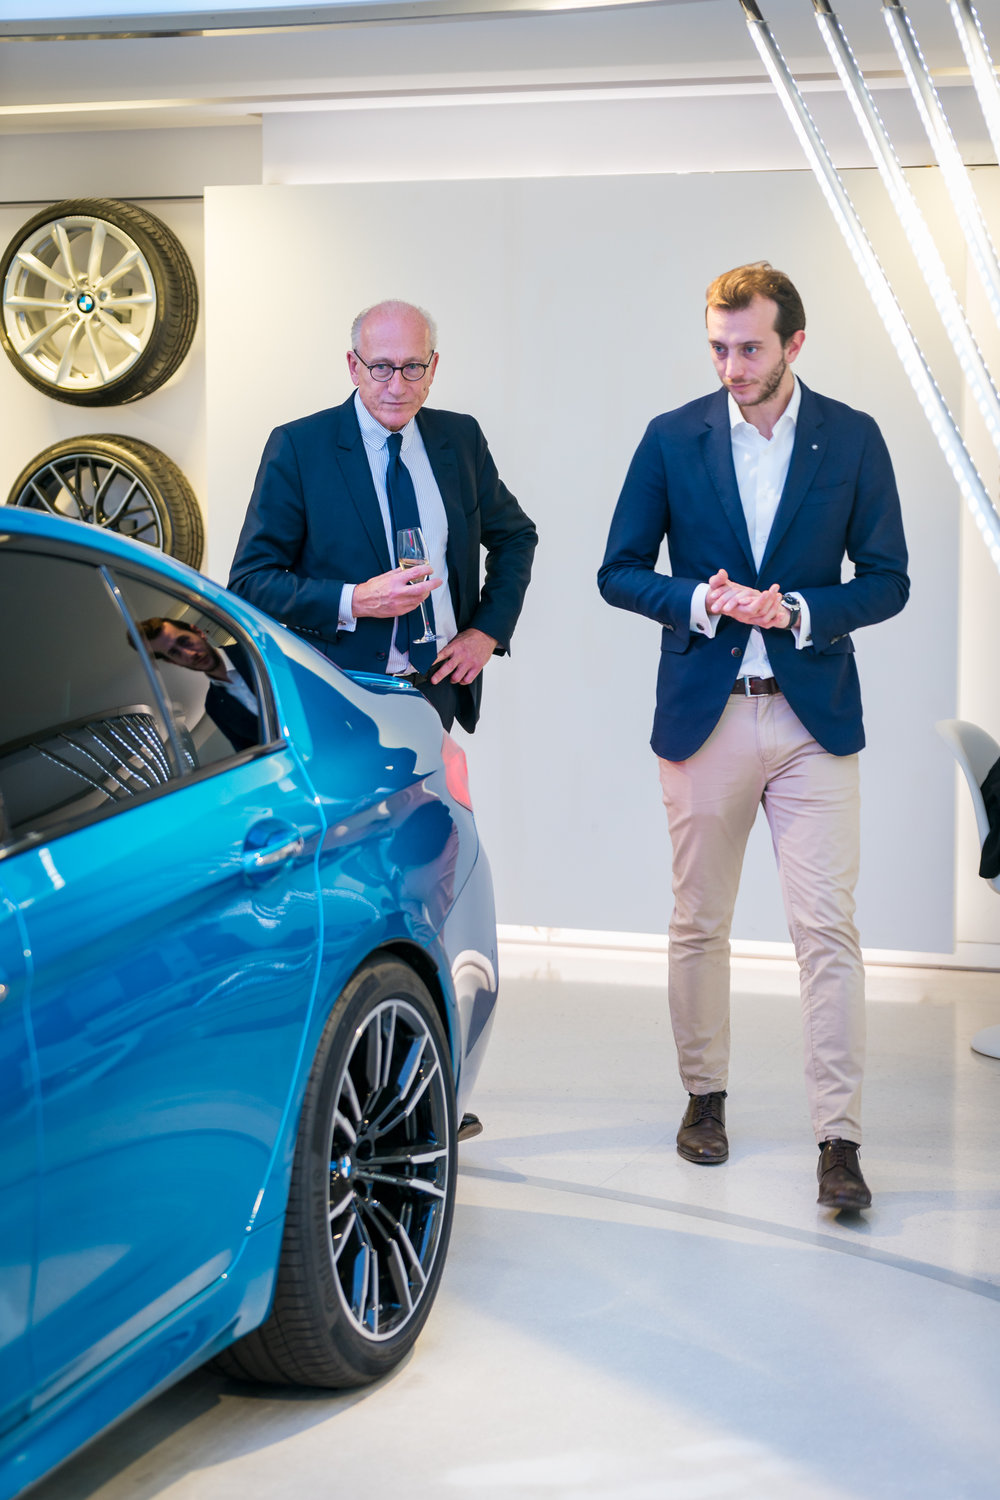 BMW Brand Store George V _Prix du Style 2018 _ 20-11-18 _ Florian Leger_SHARE & DARE _ HD _ N°-22.jpg